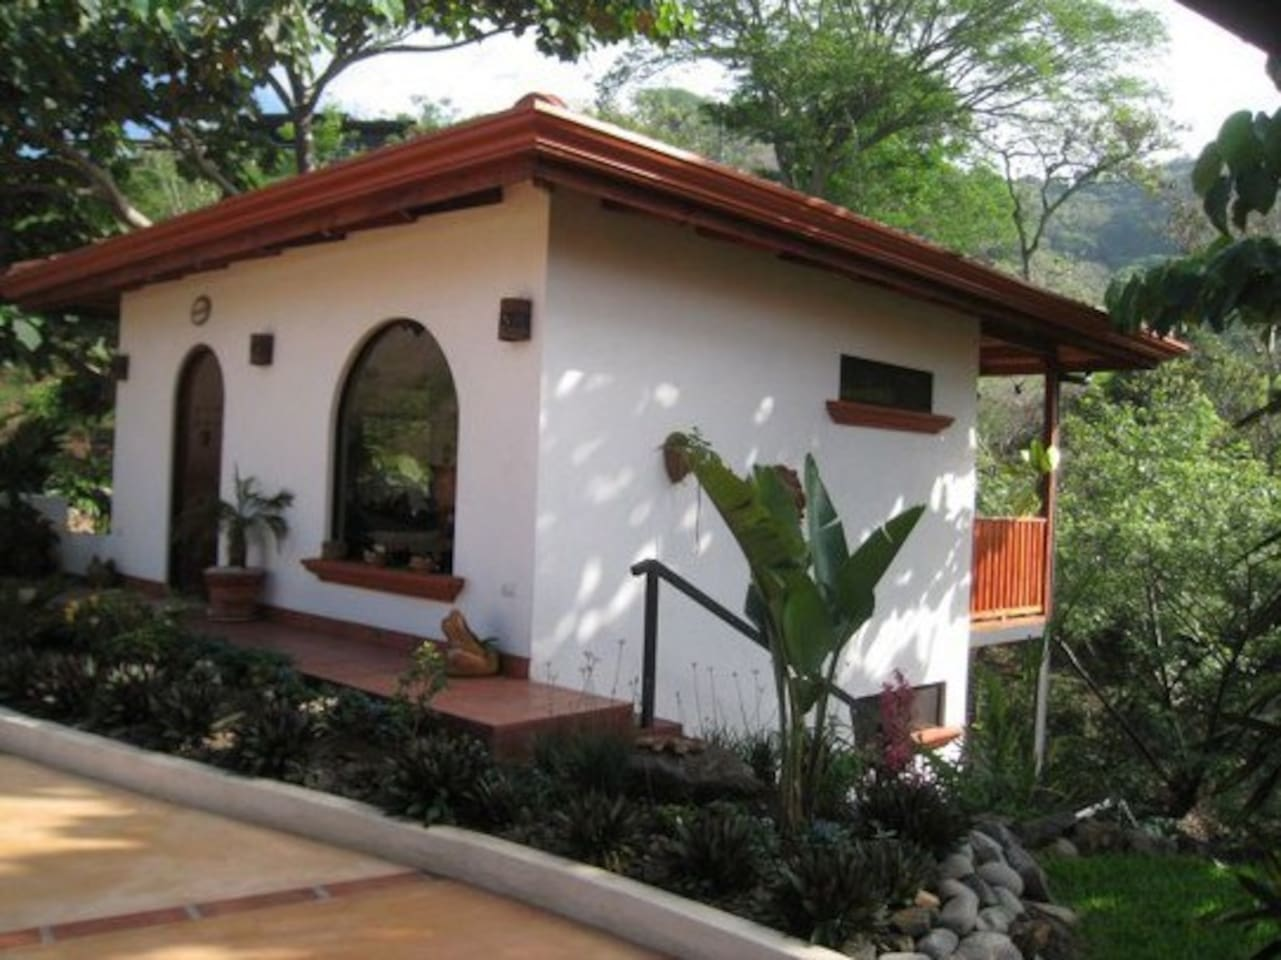 Cozy Spanish Style cottage tucked away in the jungle